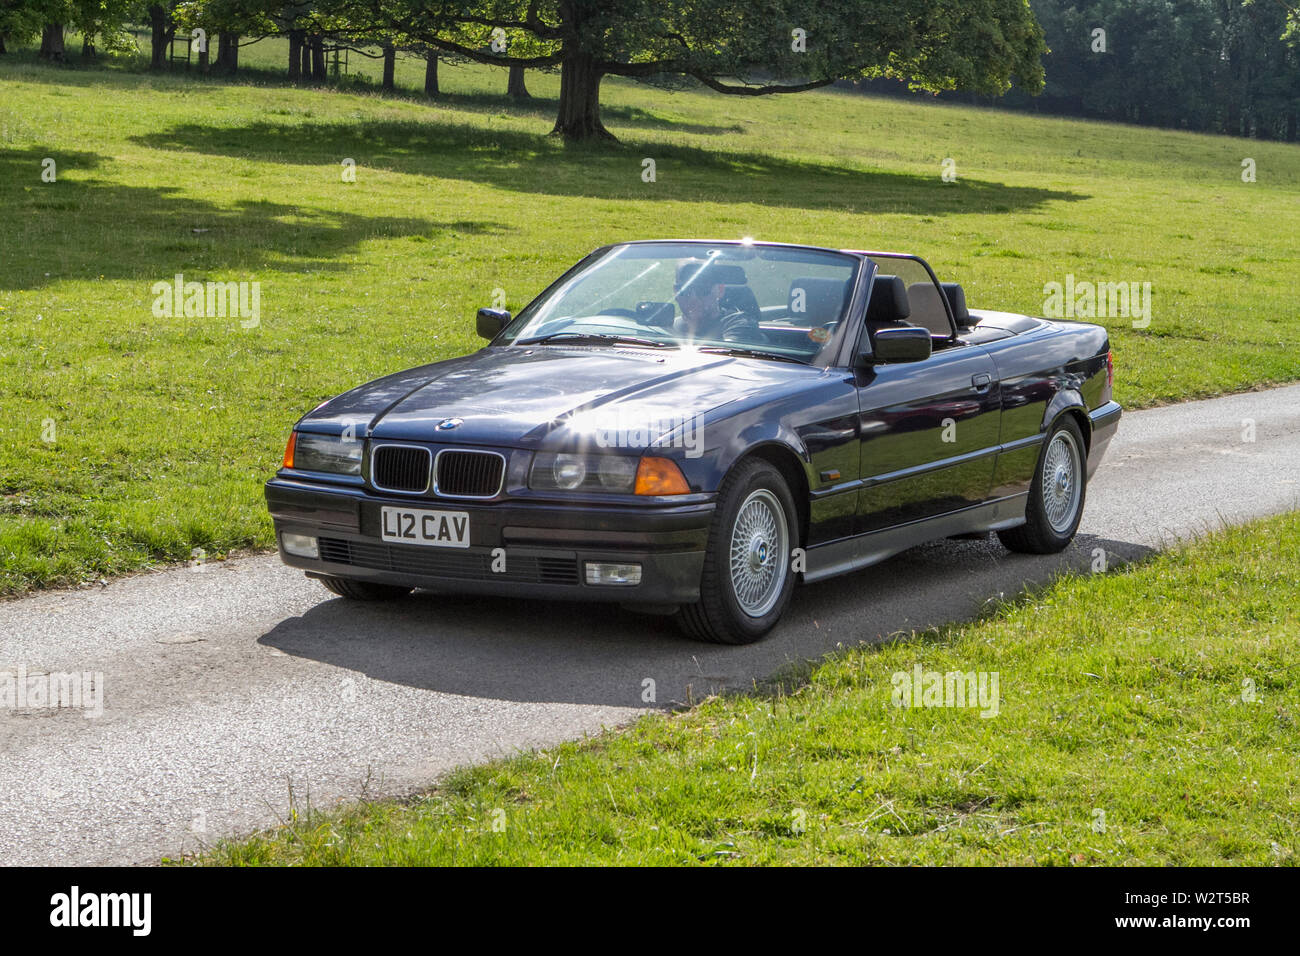 L12cav Bmw 325i Convertible Vintage Classic Restored Historic Vehicles Cars Arriving At The Leighton Hall Car Show In Carnforth Lancaster Uk Stock Photo Alamy